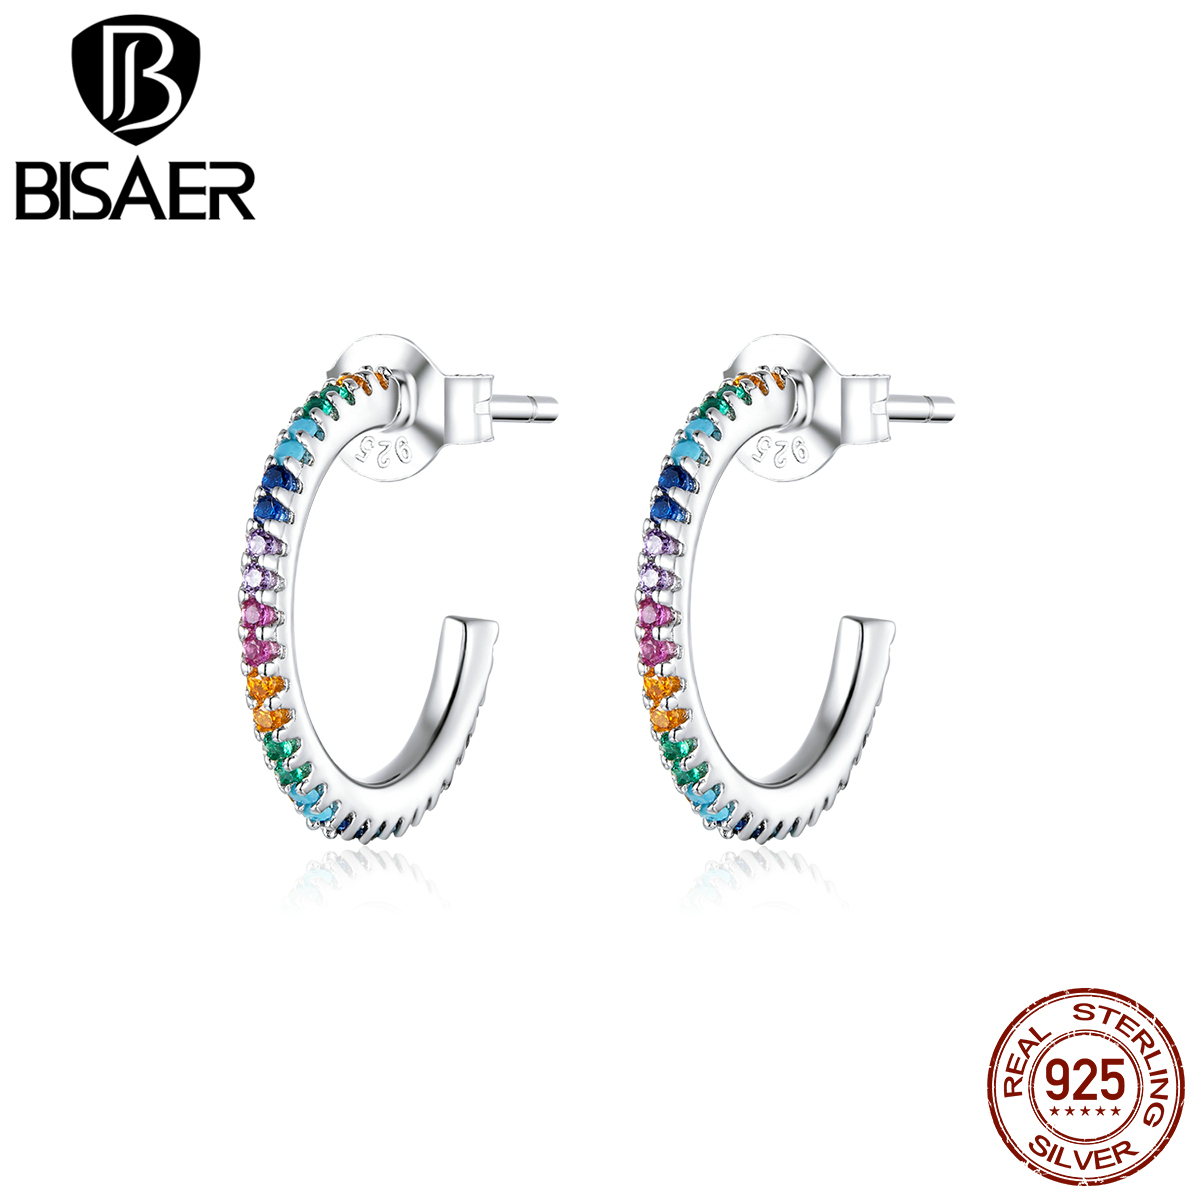 Stud Earrings BISAER 2020 New 925 Sterling Silver Rainbow Color Zircon Women Earrings Clear Cubic Zircon Silver Jewelry ECE837